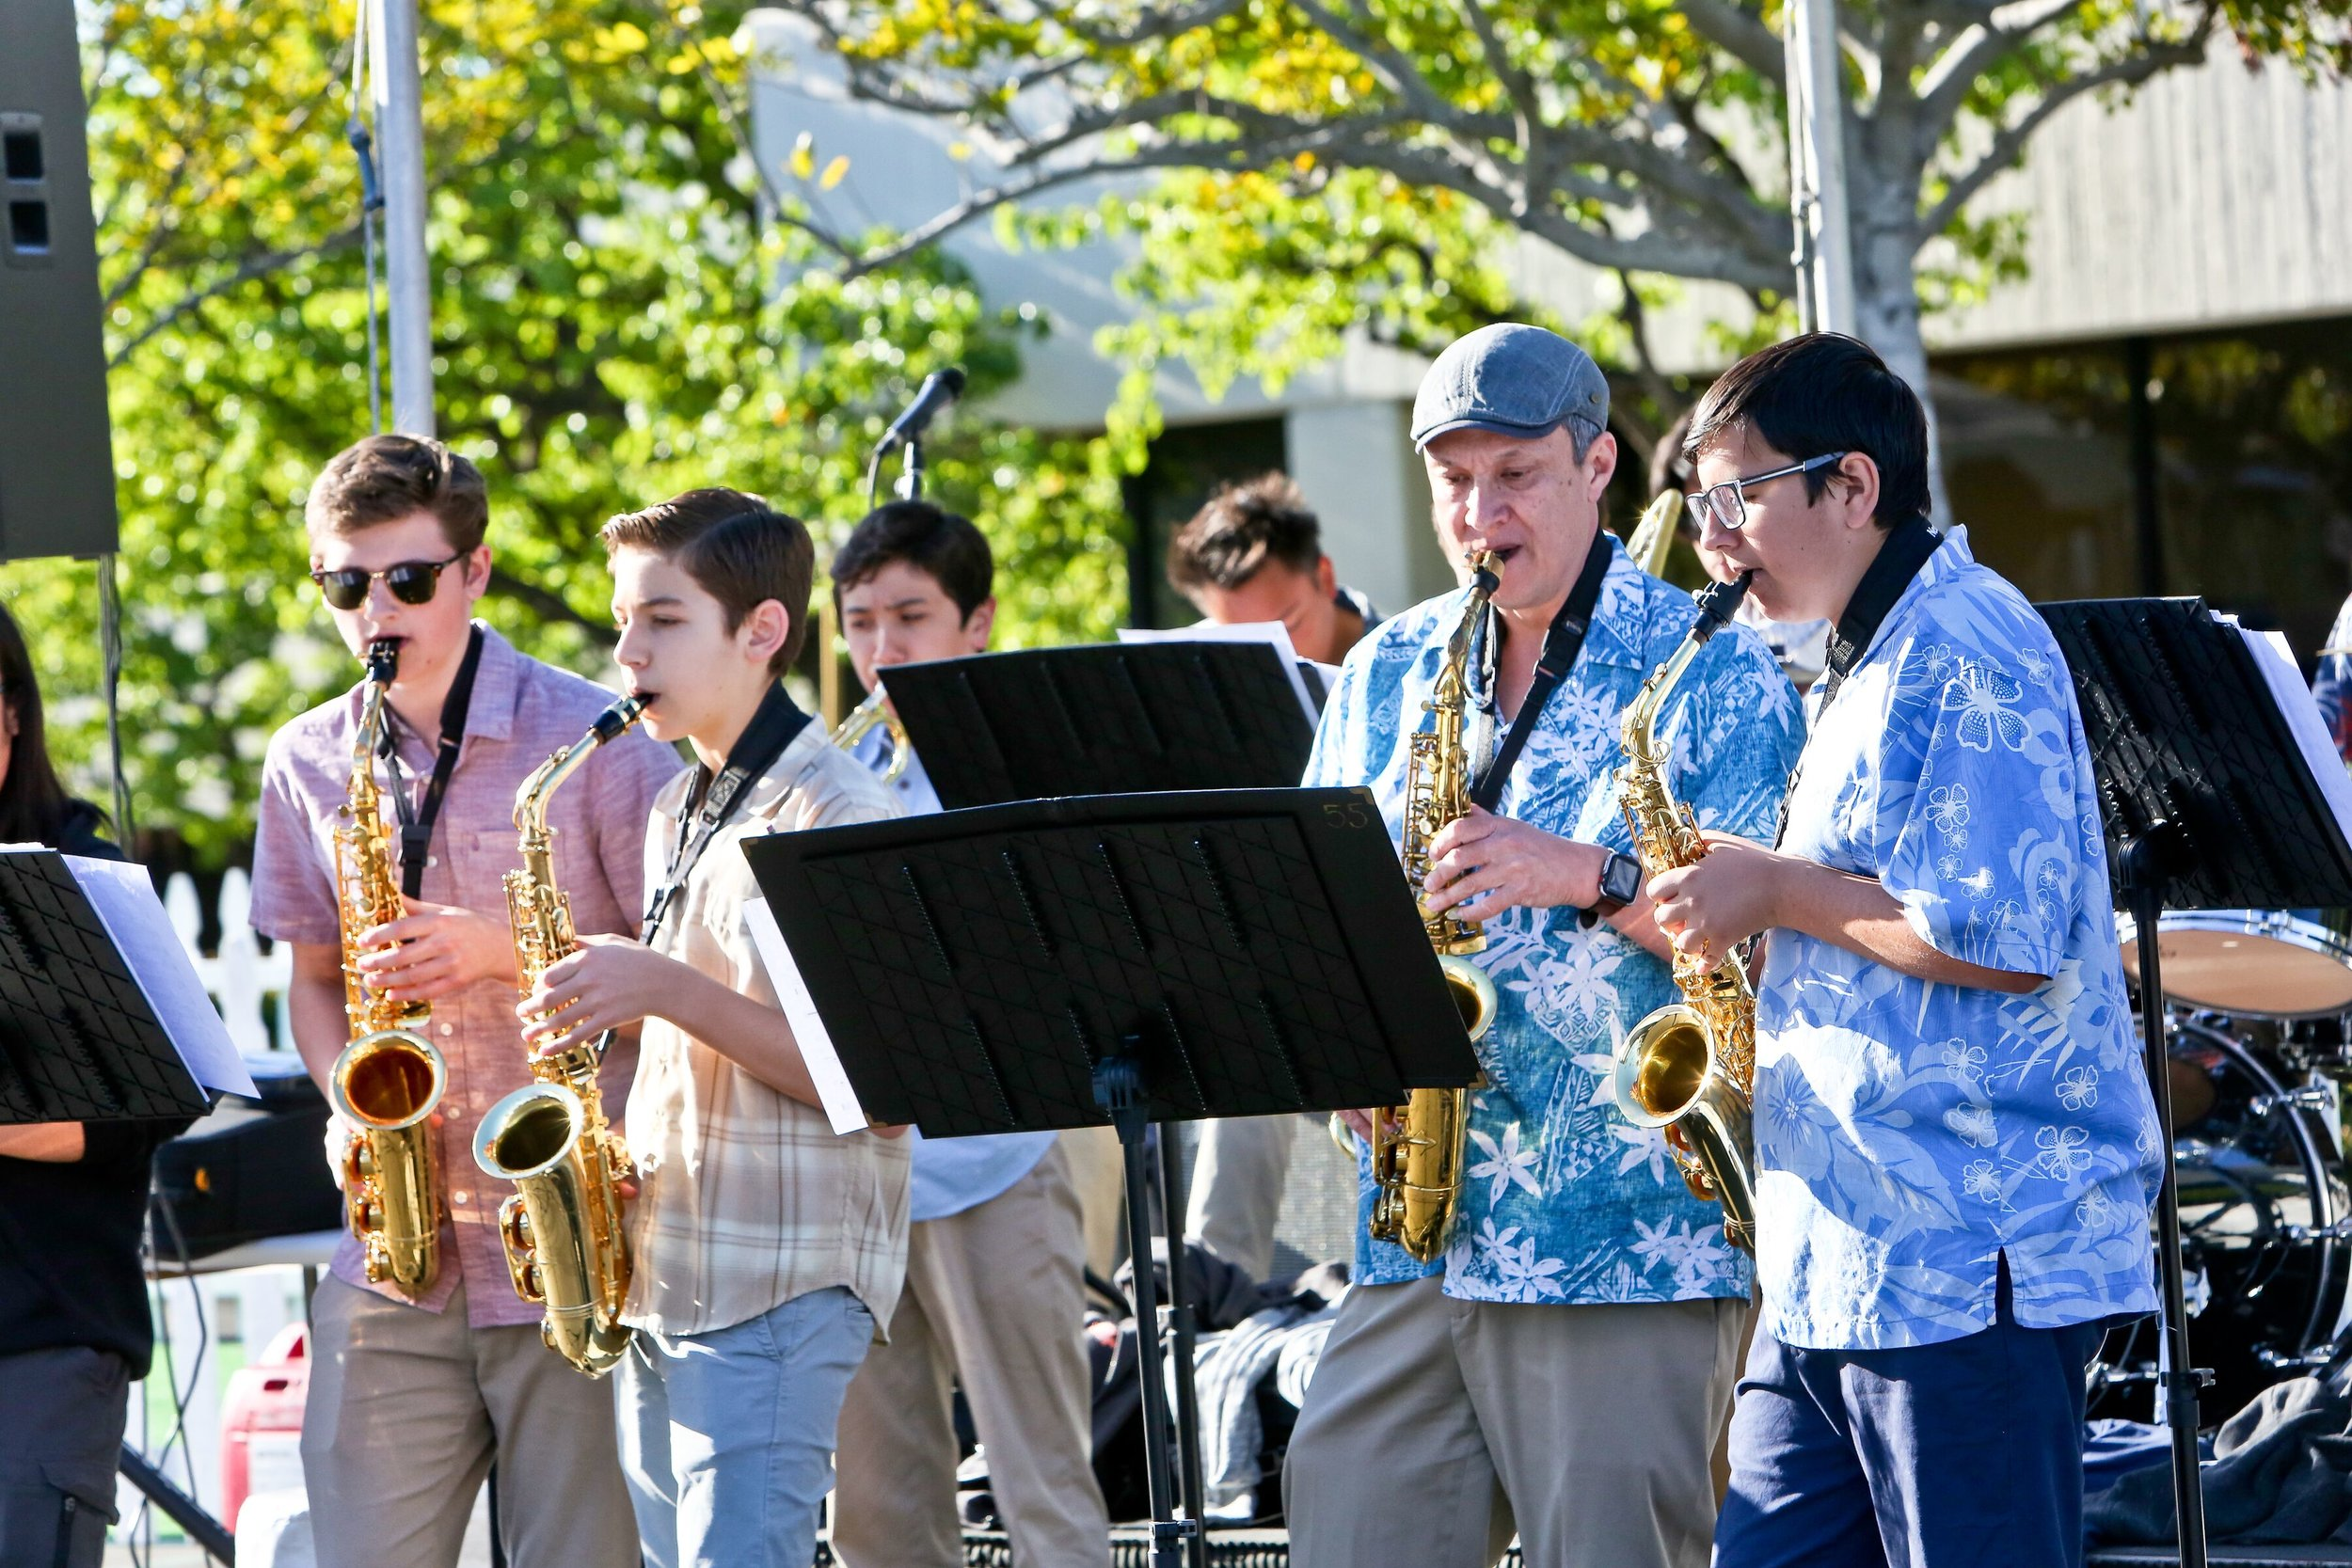 cdm jazz band performing 8.jpeg